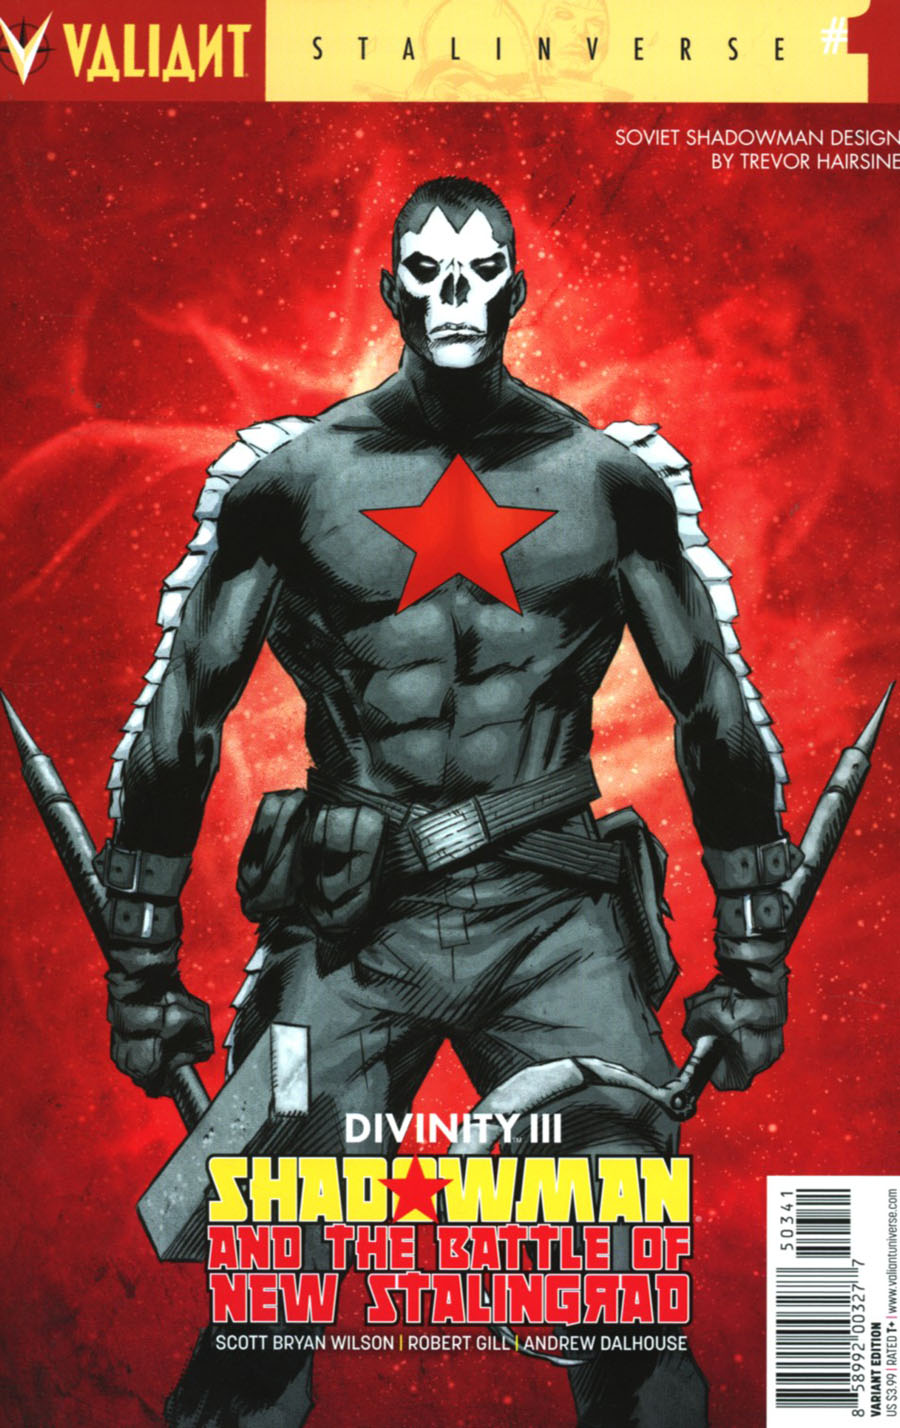 Divinity III Shadowman And The Battle Of New Stalingrad #1 Cover D Incentive Trevor Hairsine Character Design Variant Cover